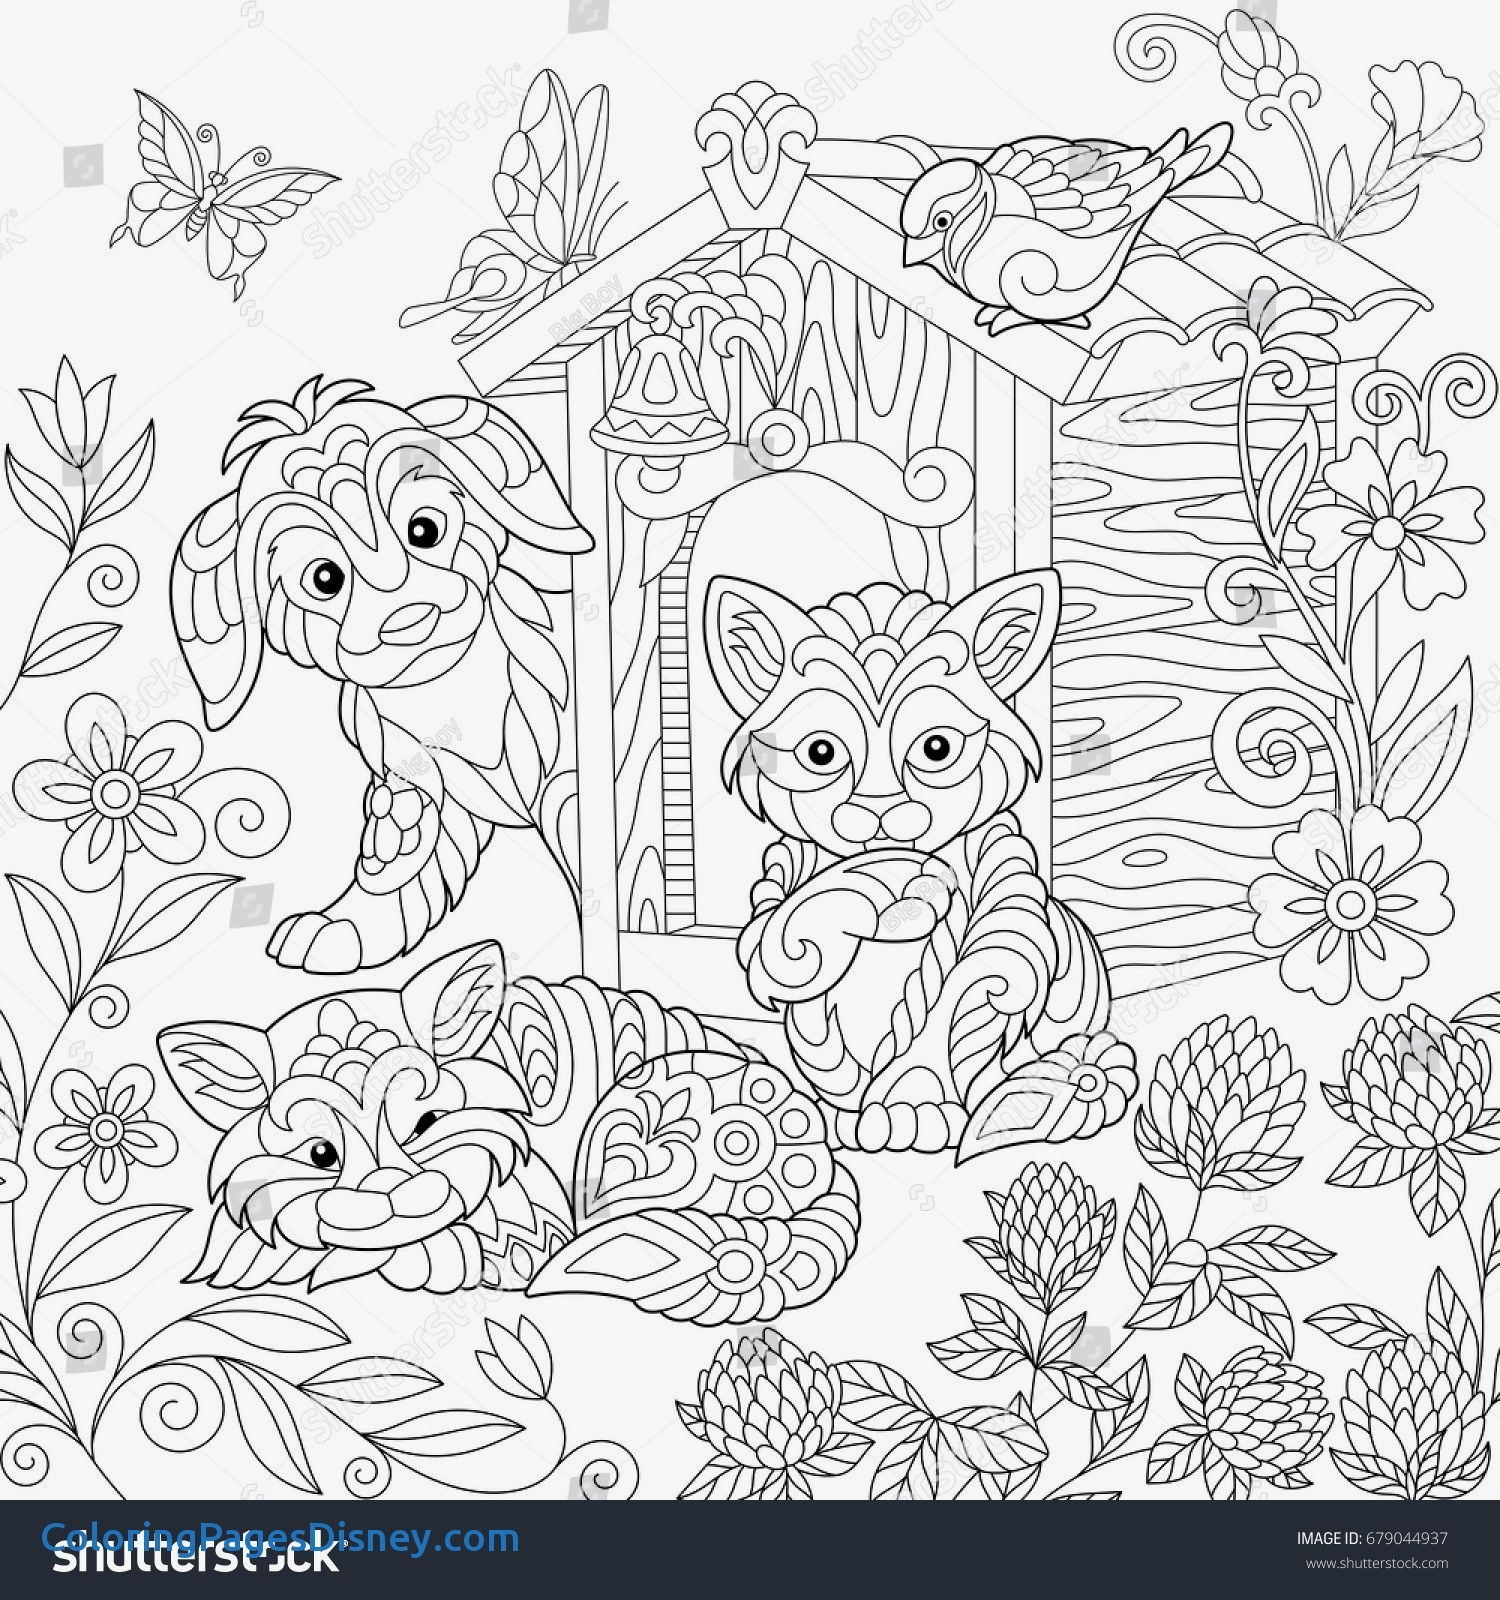 Clover Coloring Pages Printable